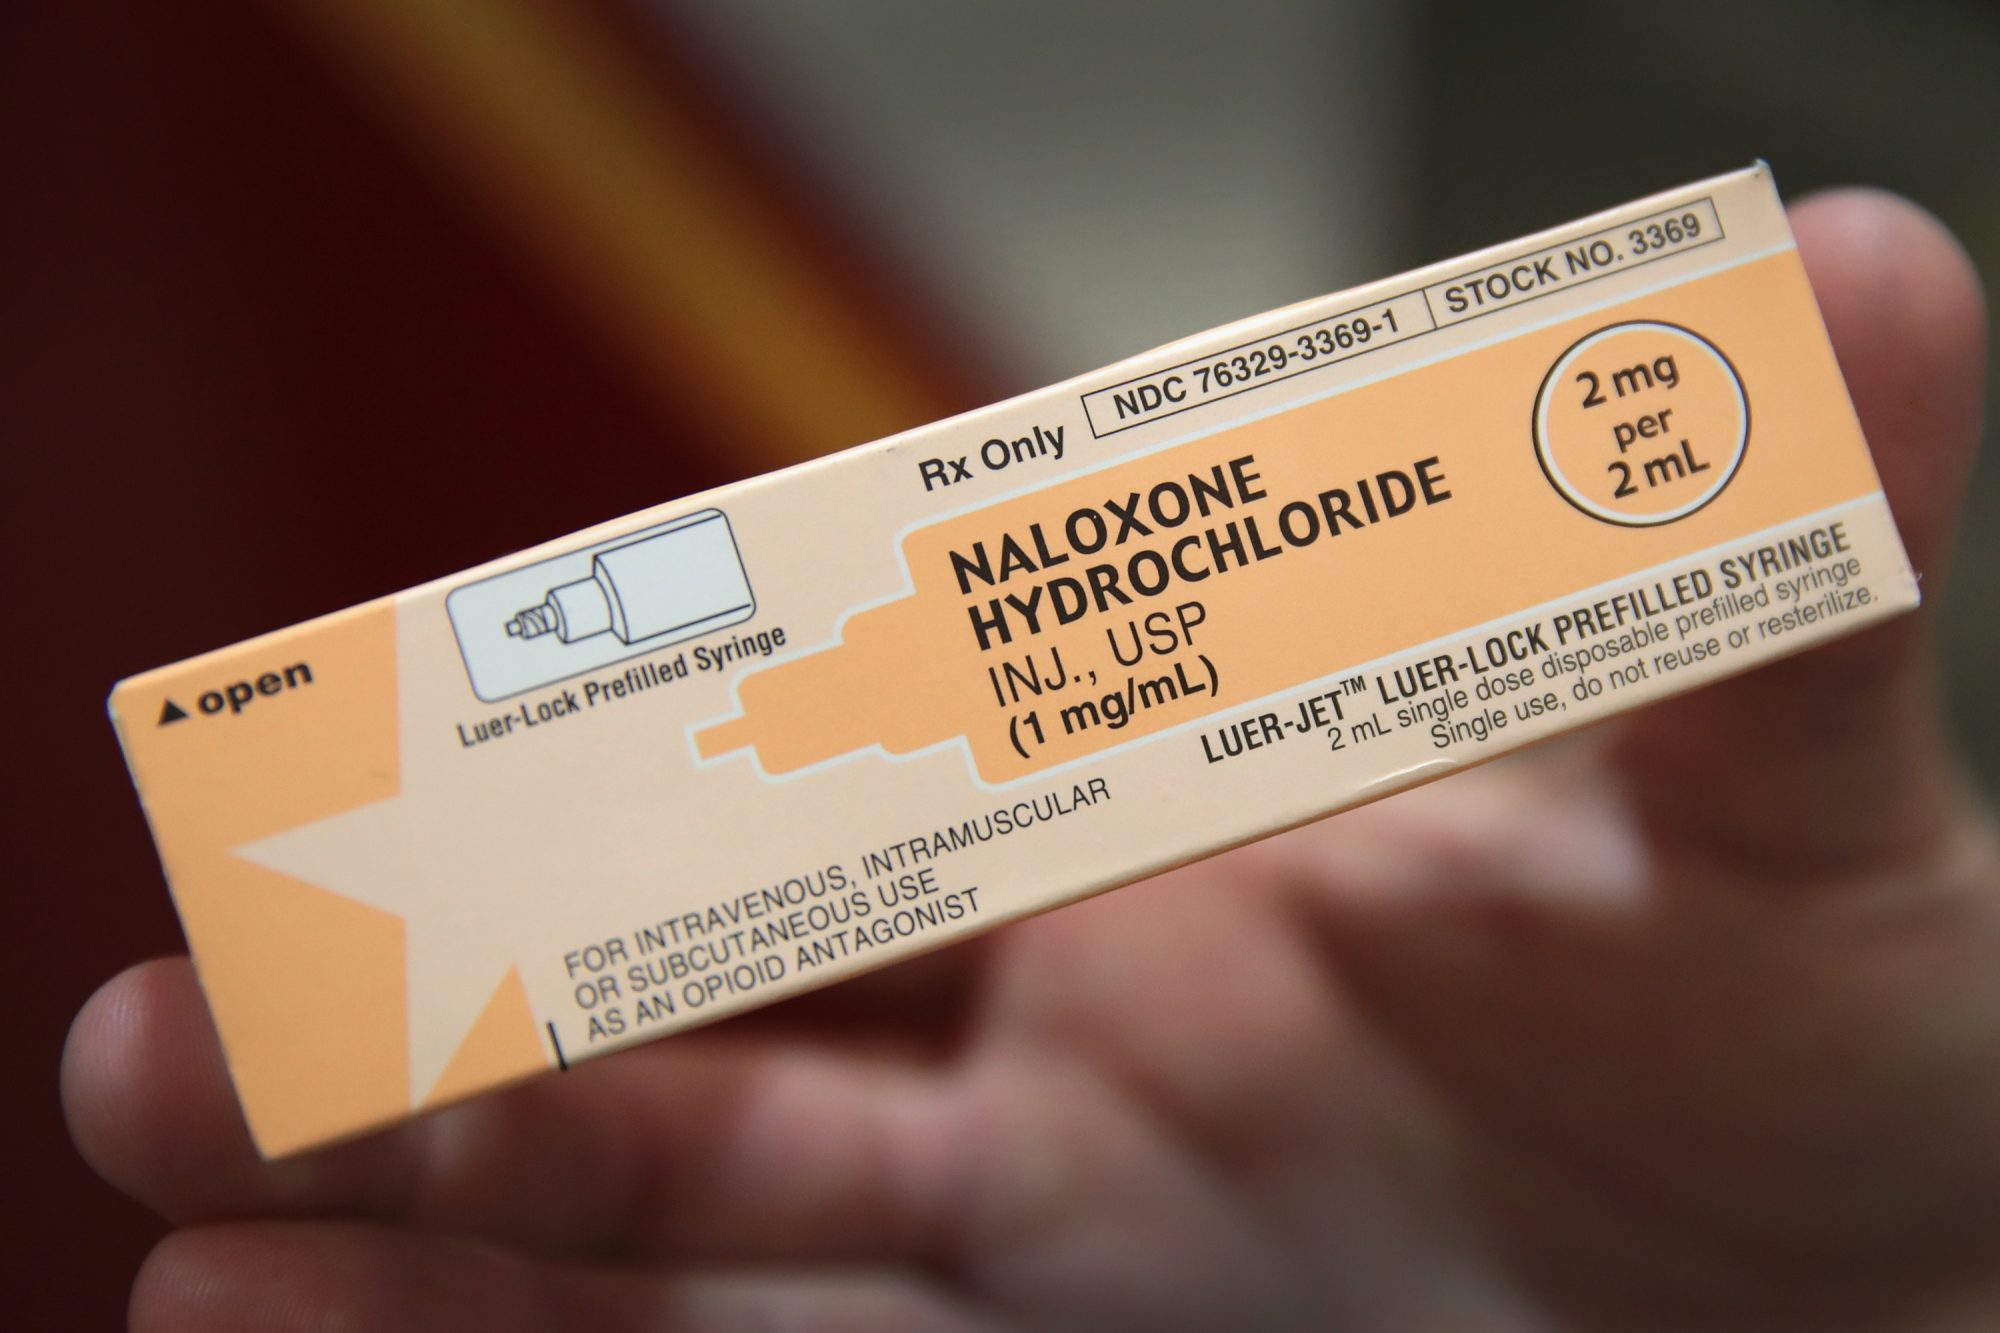 6 Facts About Naloxone, the Drug That Reverses Overdoses